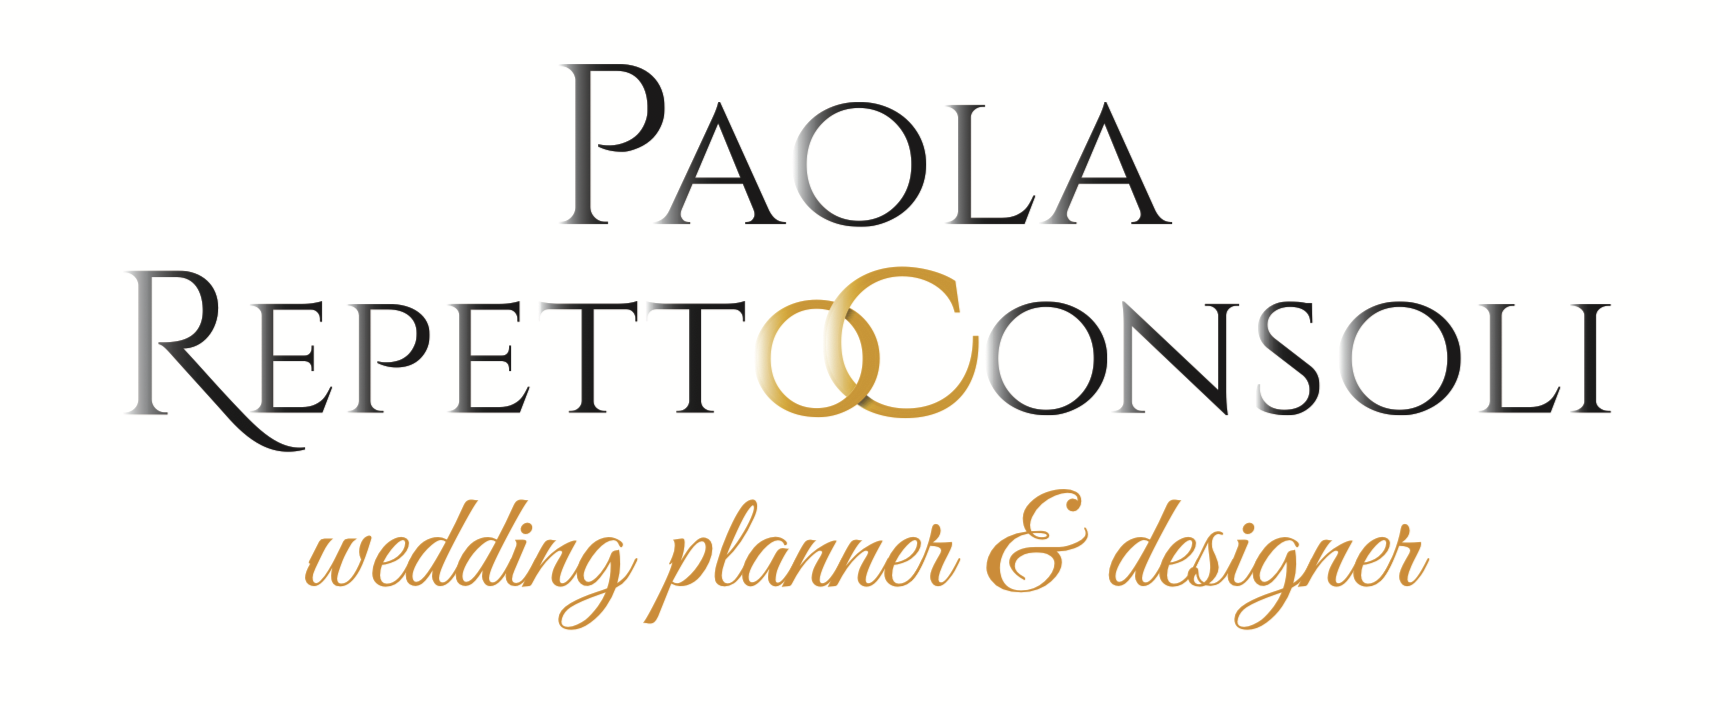 Paola Repetto Consoli | Wedding planner&designer